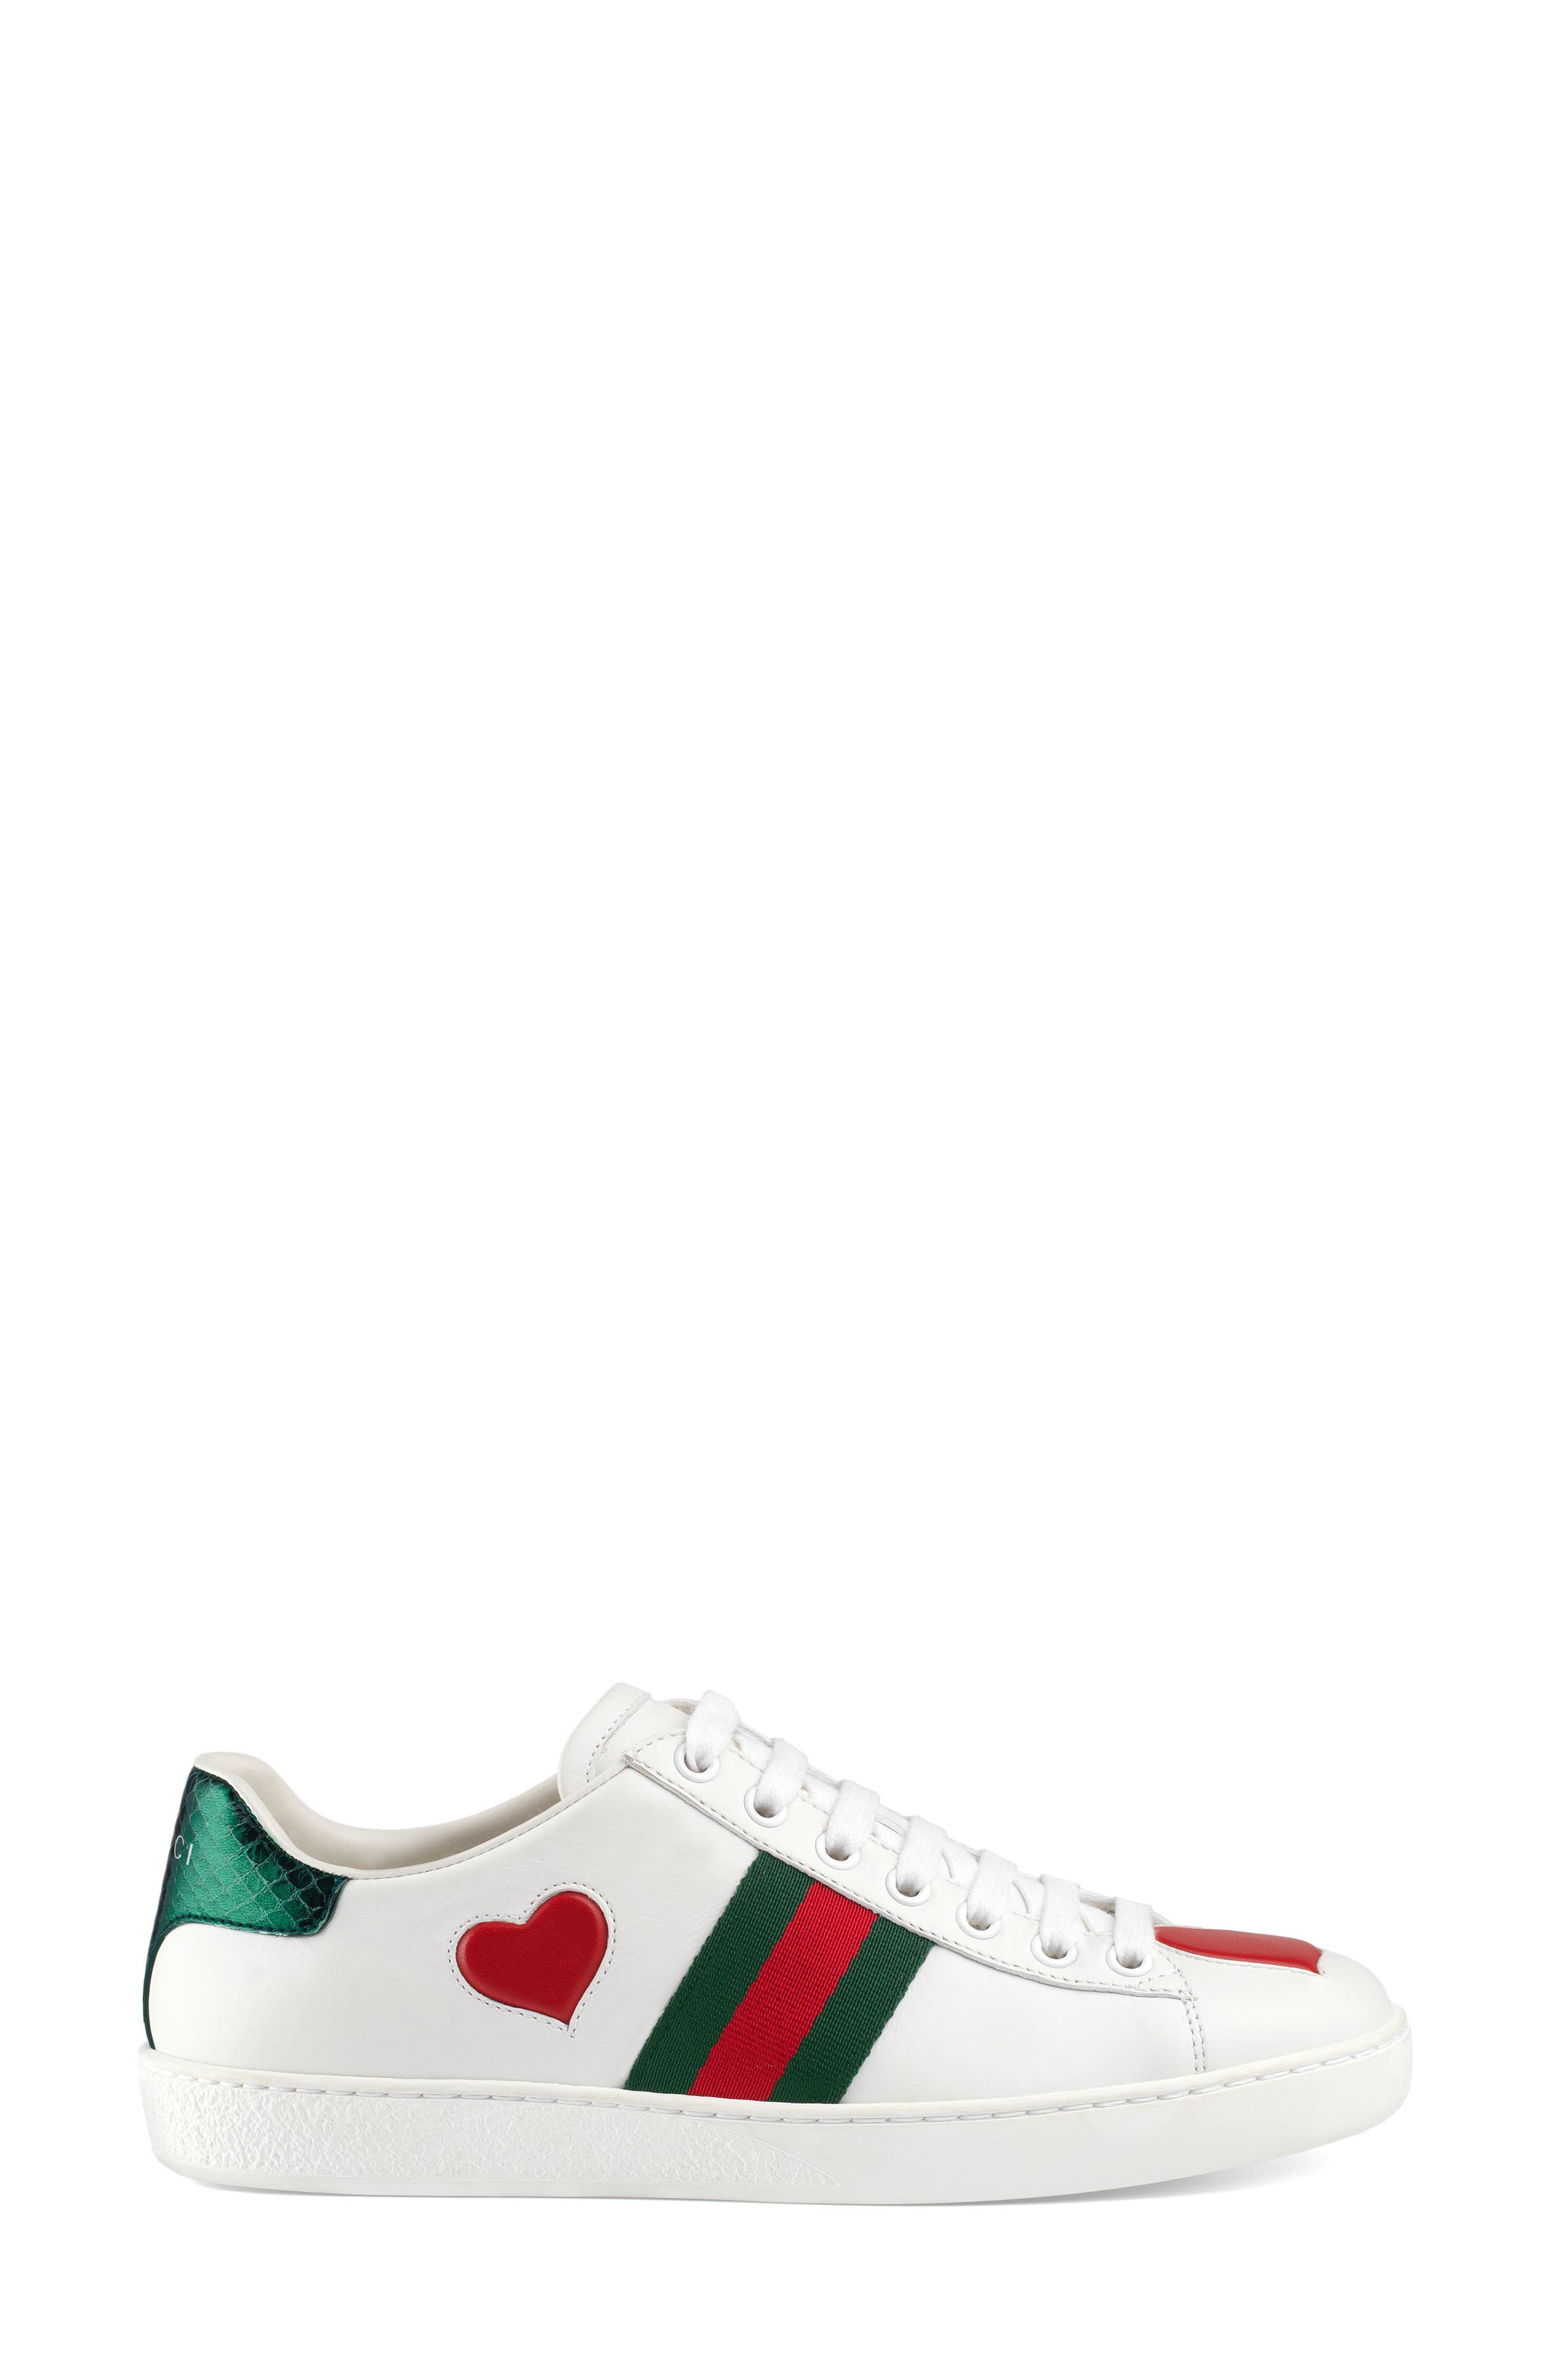 GUCCI,                             New Ace Heart Sneaker,                             Alternate thumbnail 2, color,                             138